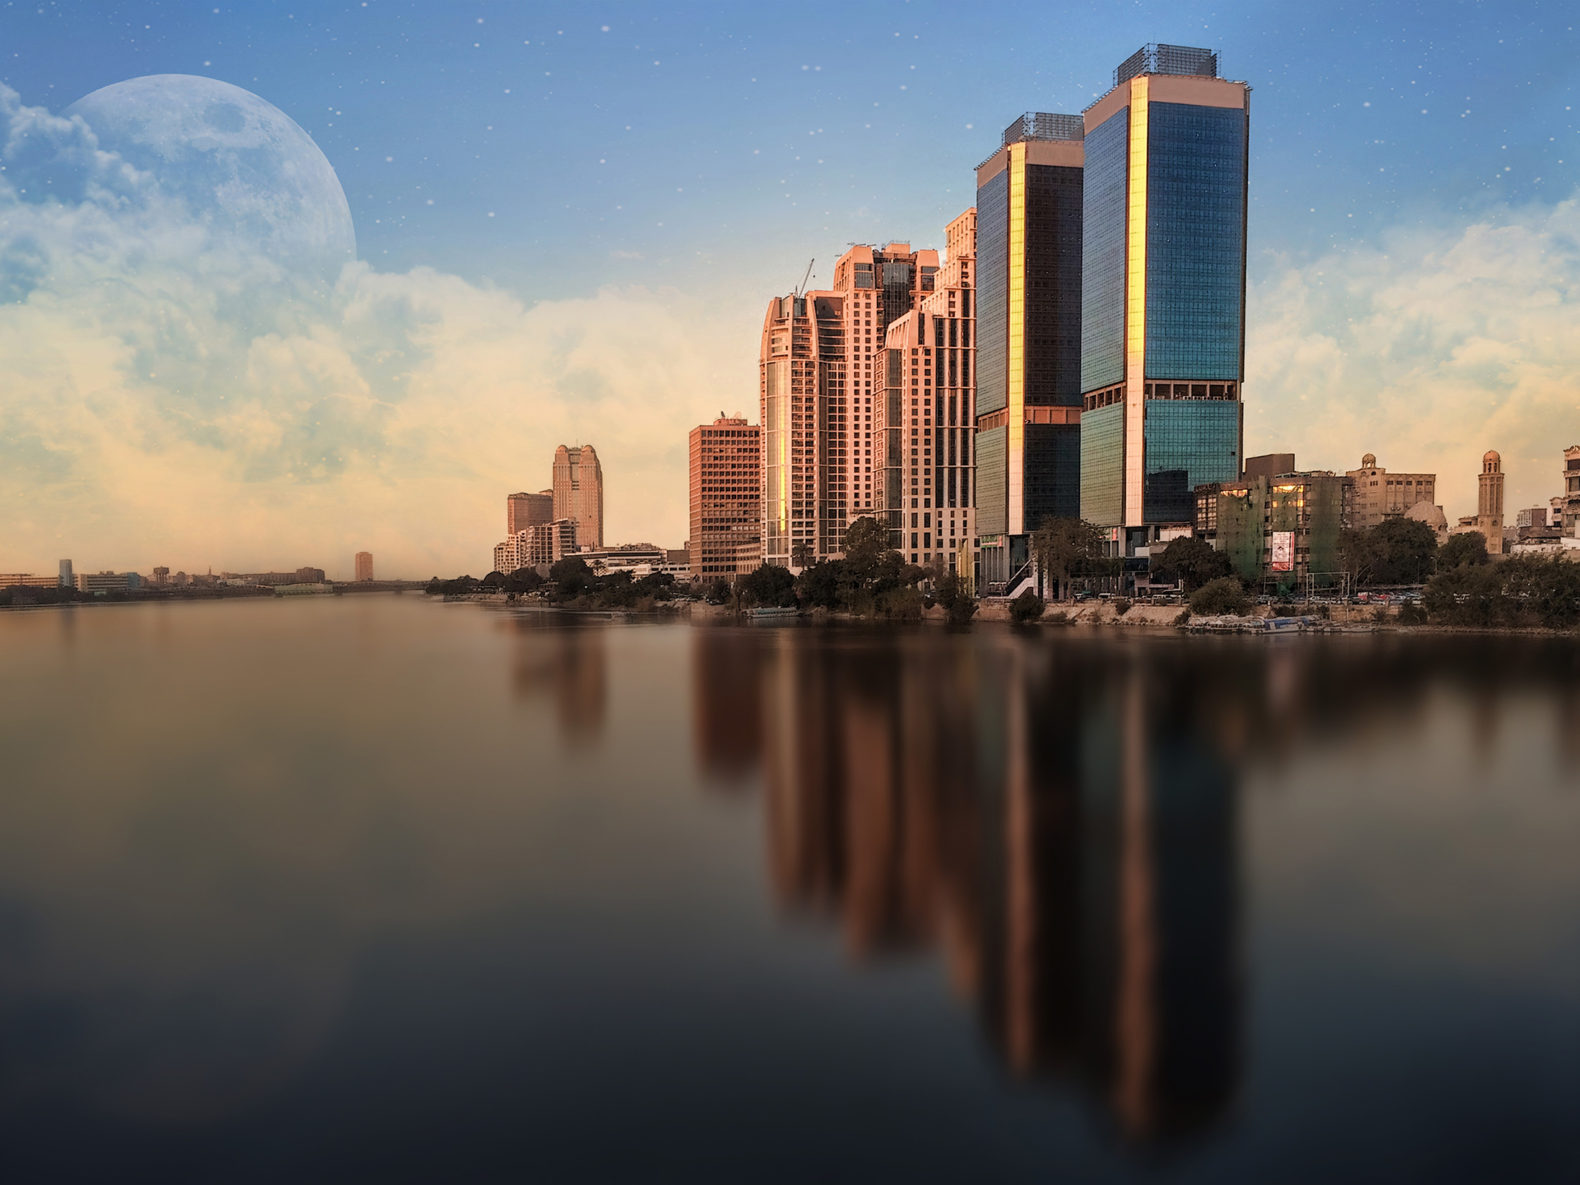 New Startup Funding and Funds Unveiled at Egypt's RiseUp Summit